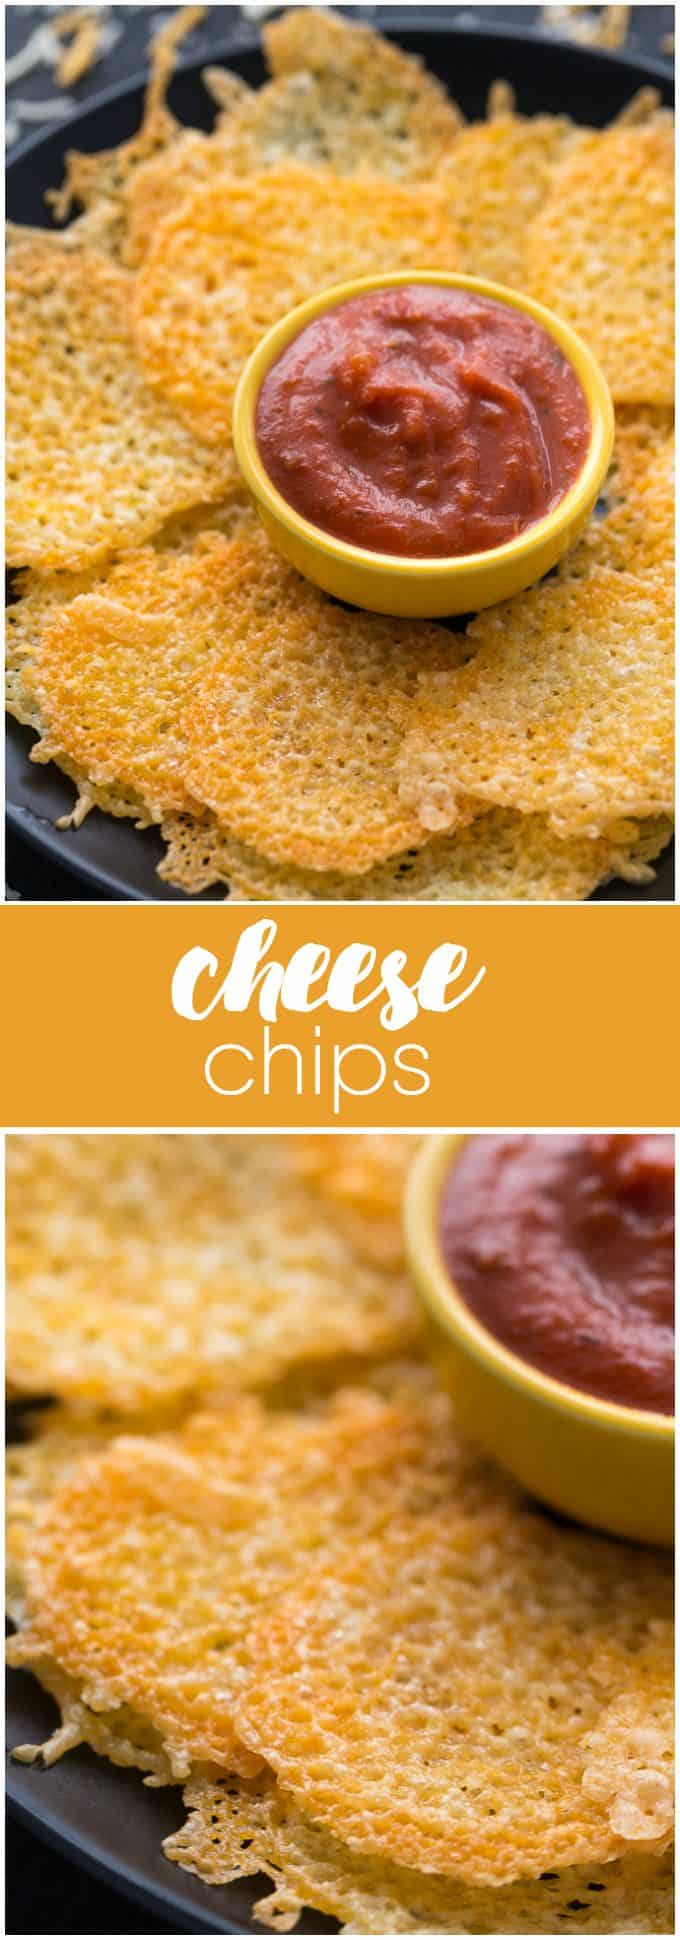 Cheese Chips - Delicious and so darn easy to make! This yummy appetizer is perfect for people following a low carb lifestyle.